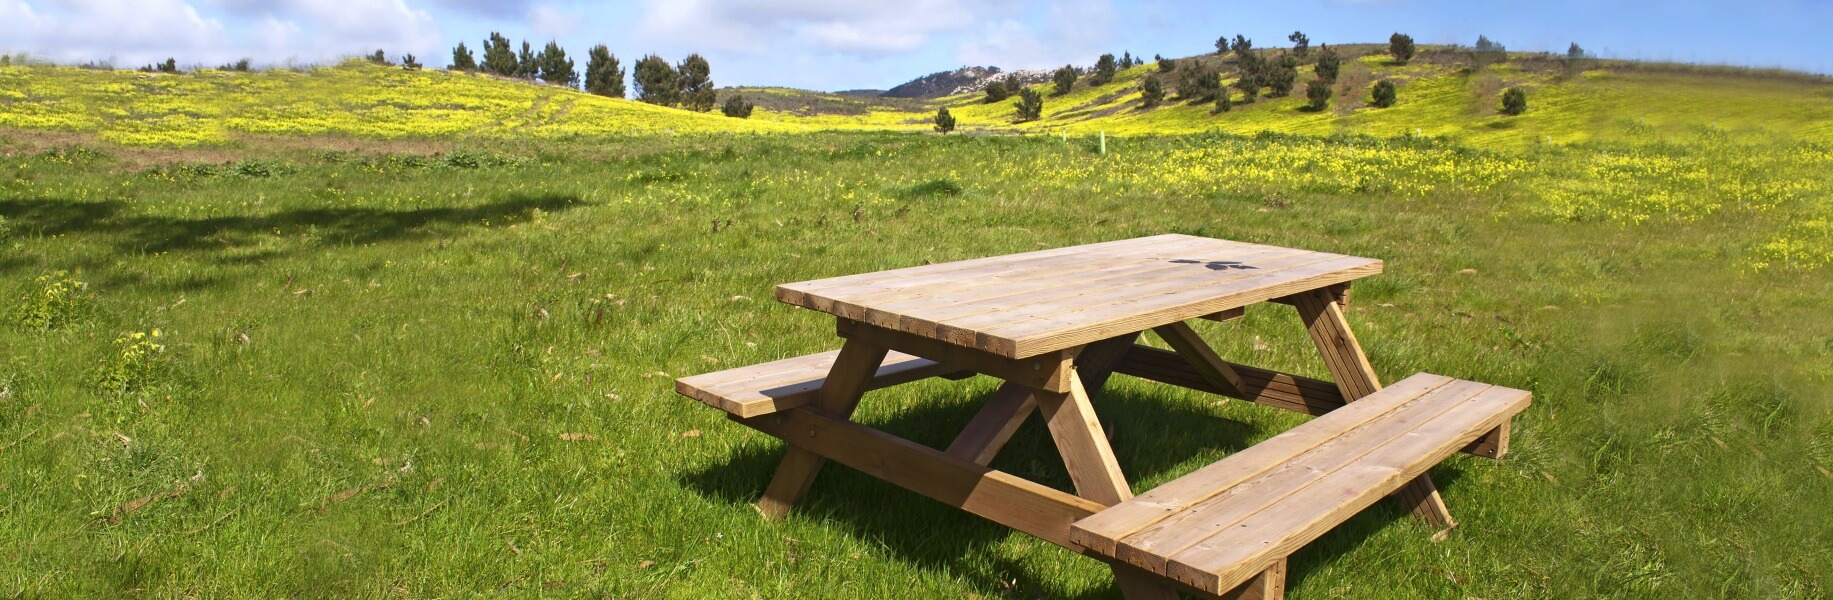 Wooden Garden Furniture Uk outdoor wooden garden furniture, recycling store, tables